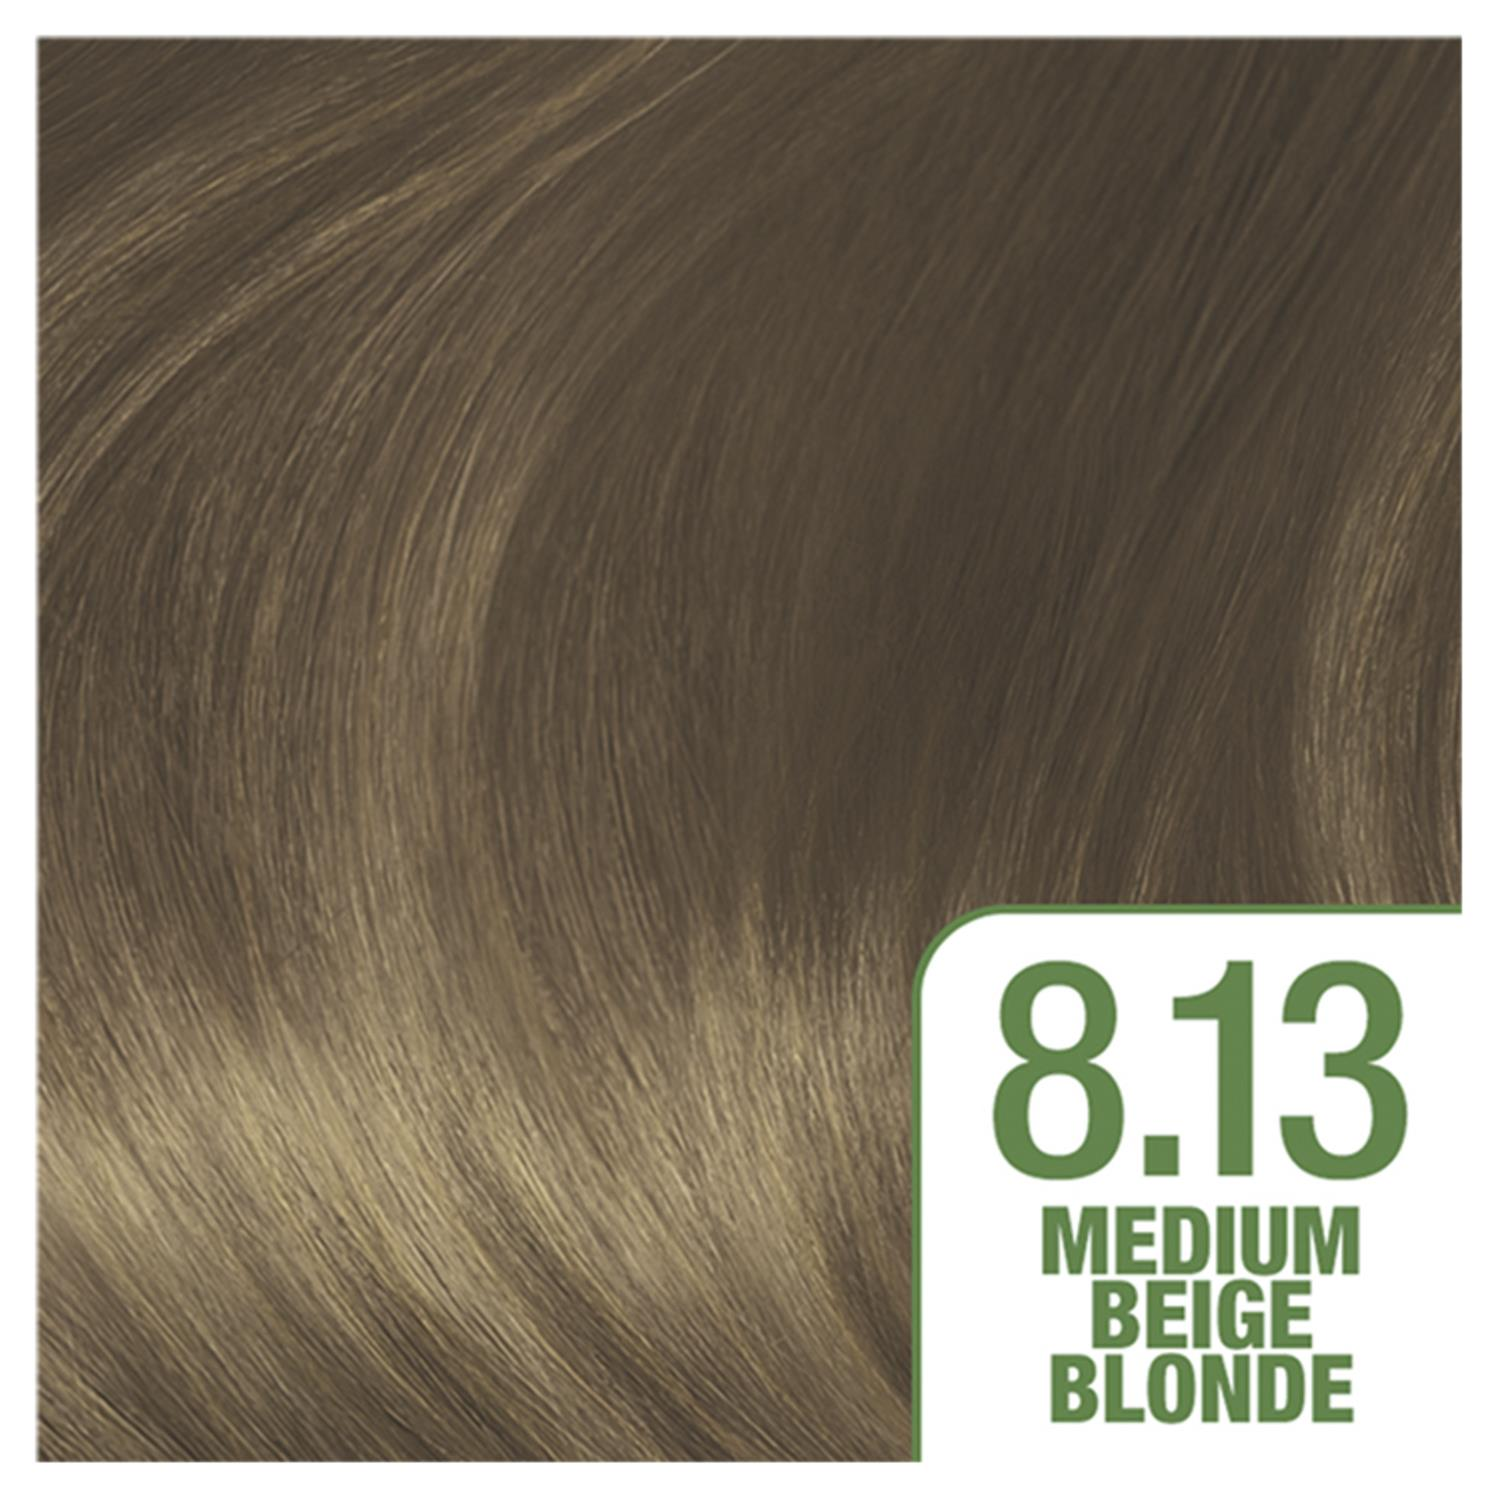 thumbnail 263 - 3 Pack Garnier Nutrisse Permanent Hair Dye With Different Shades